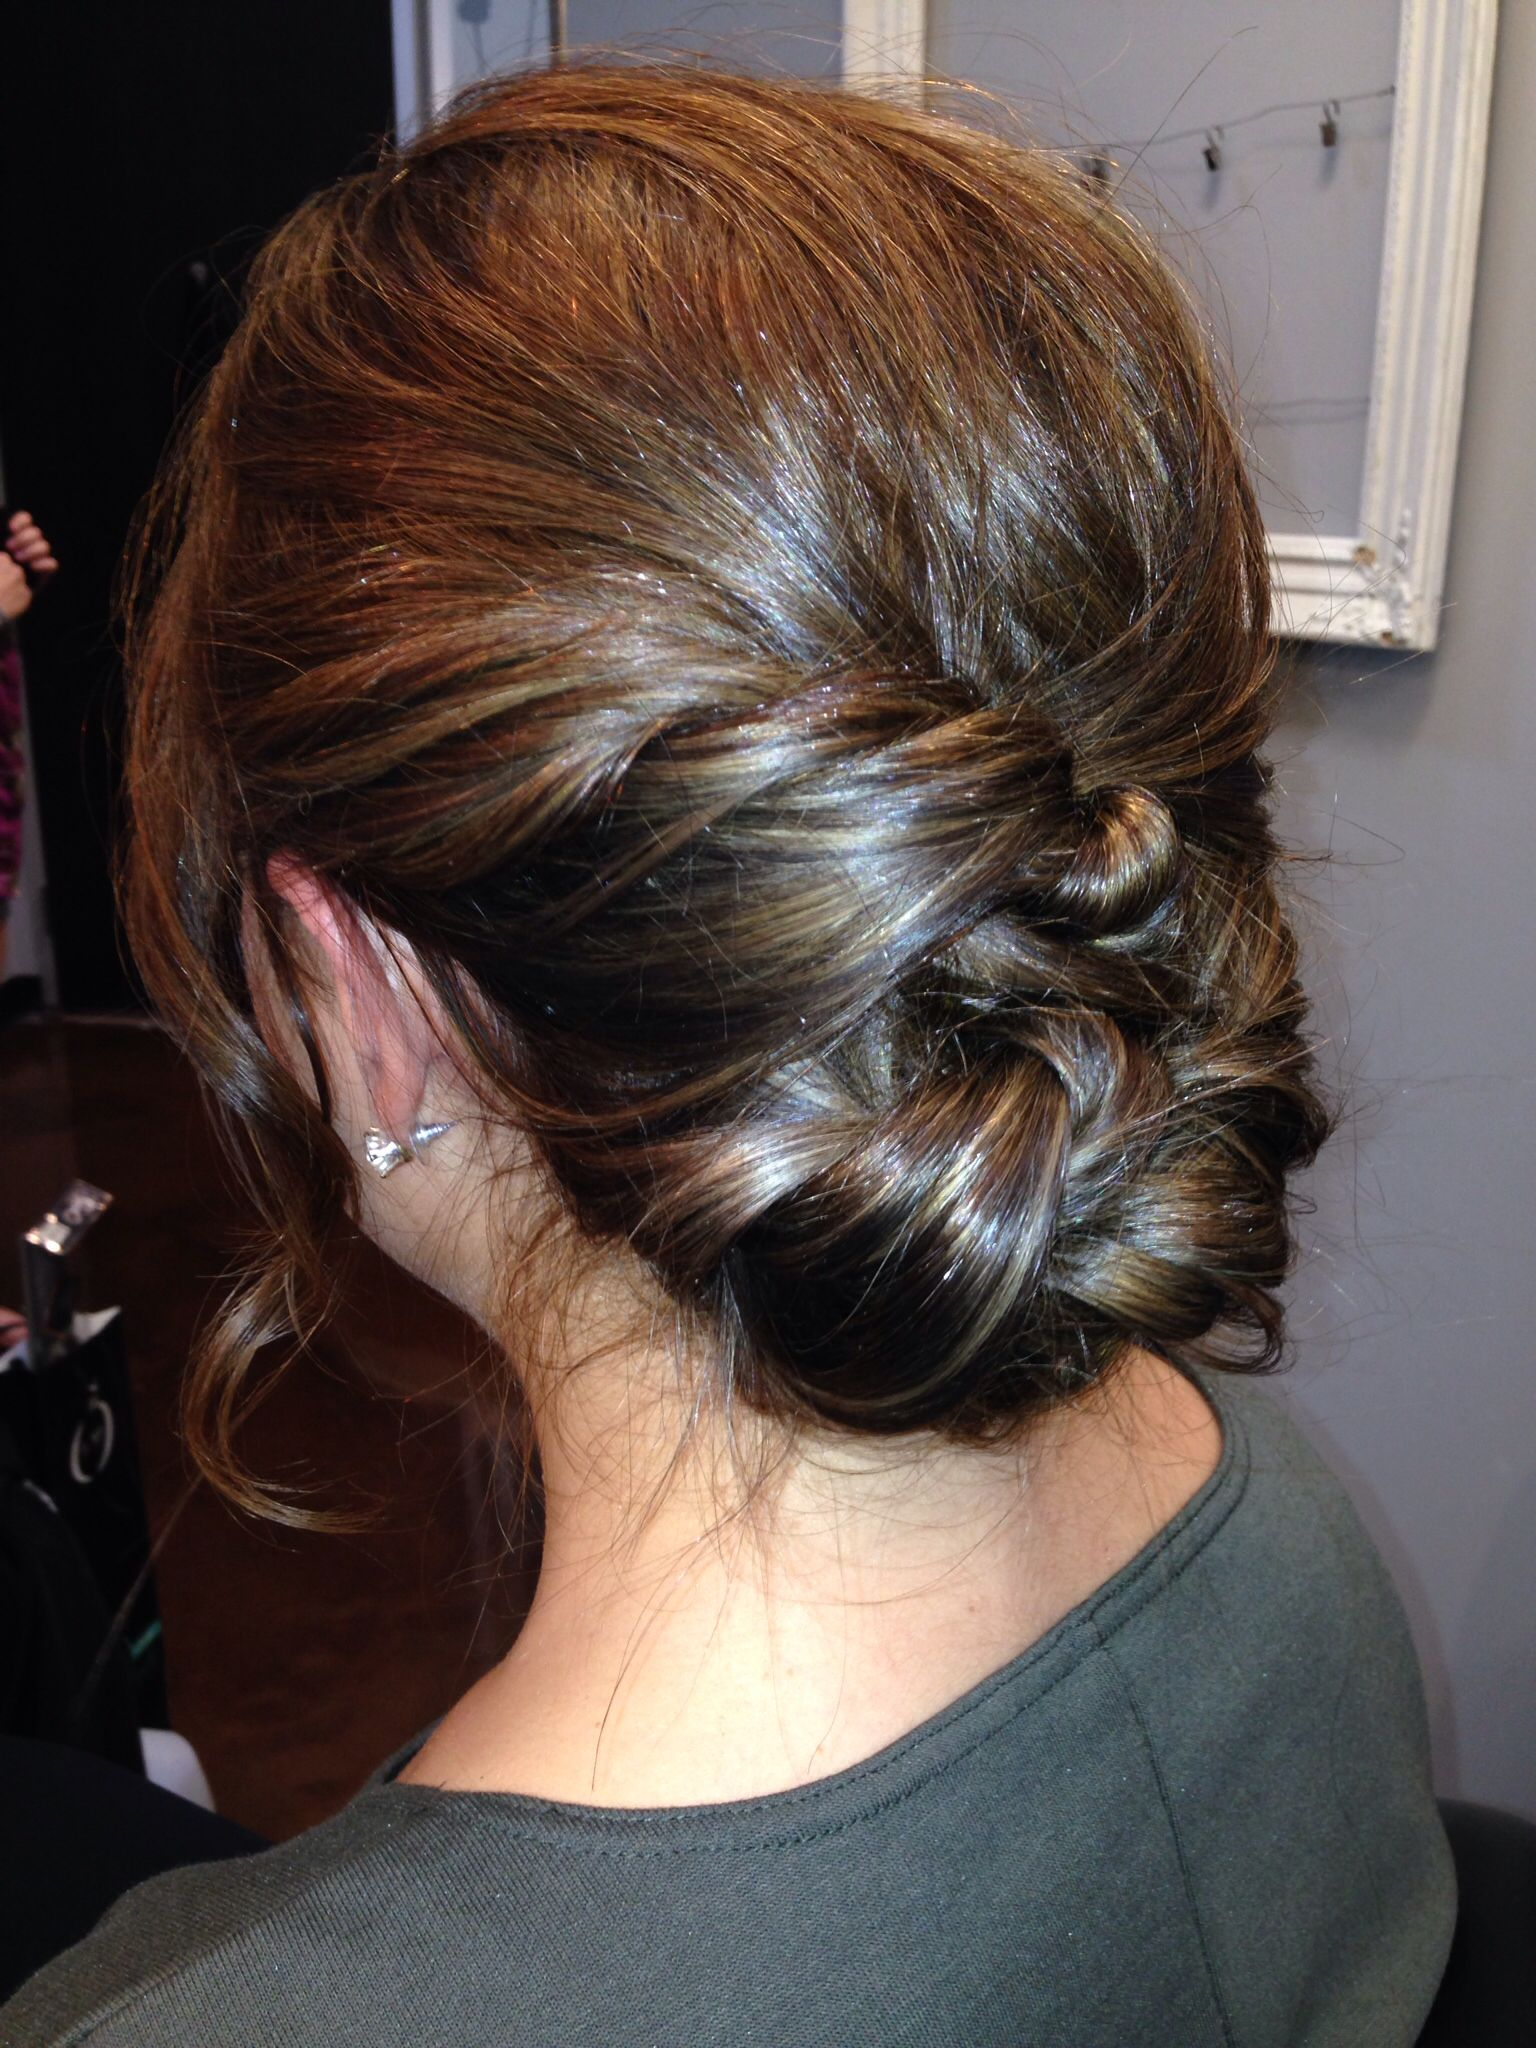 Medium length hair updo simple finger rake with twisted sides and